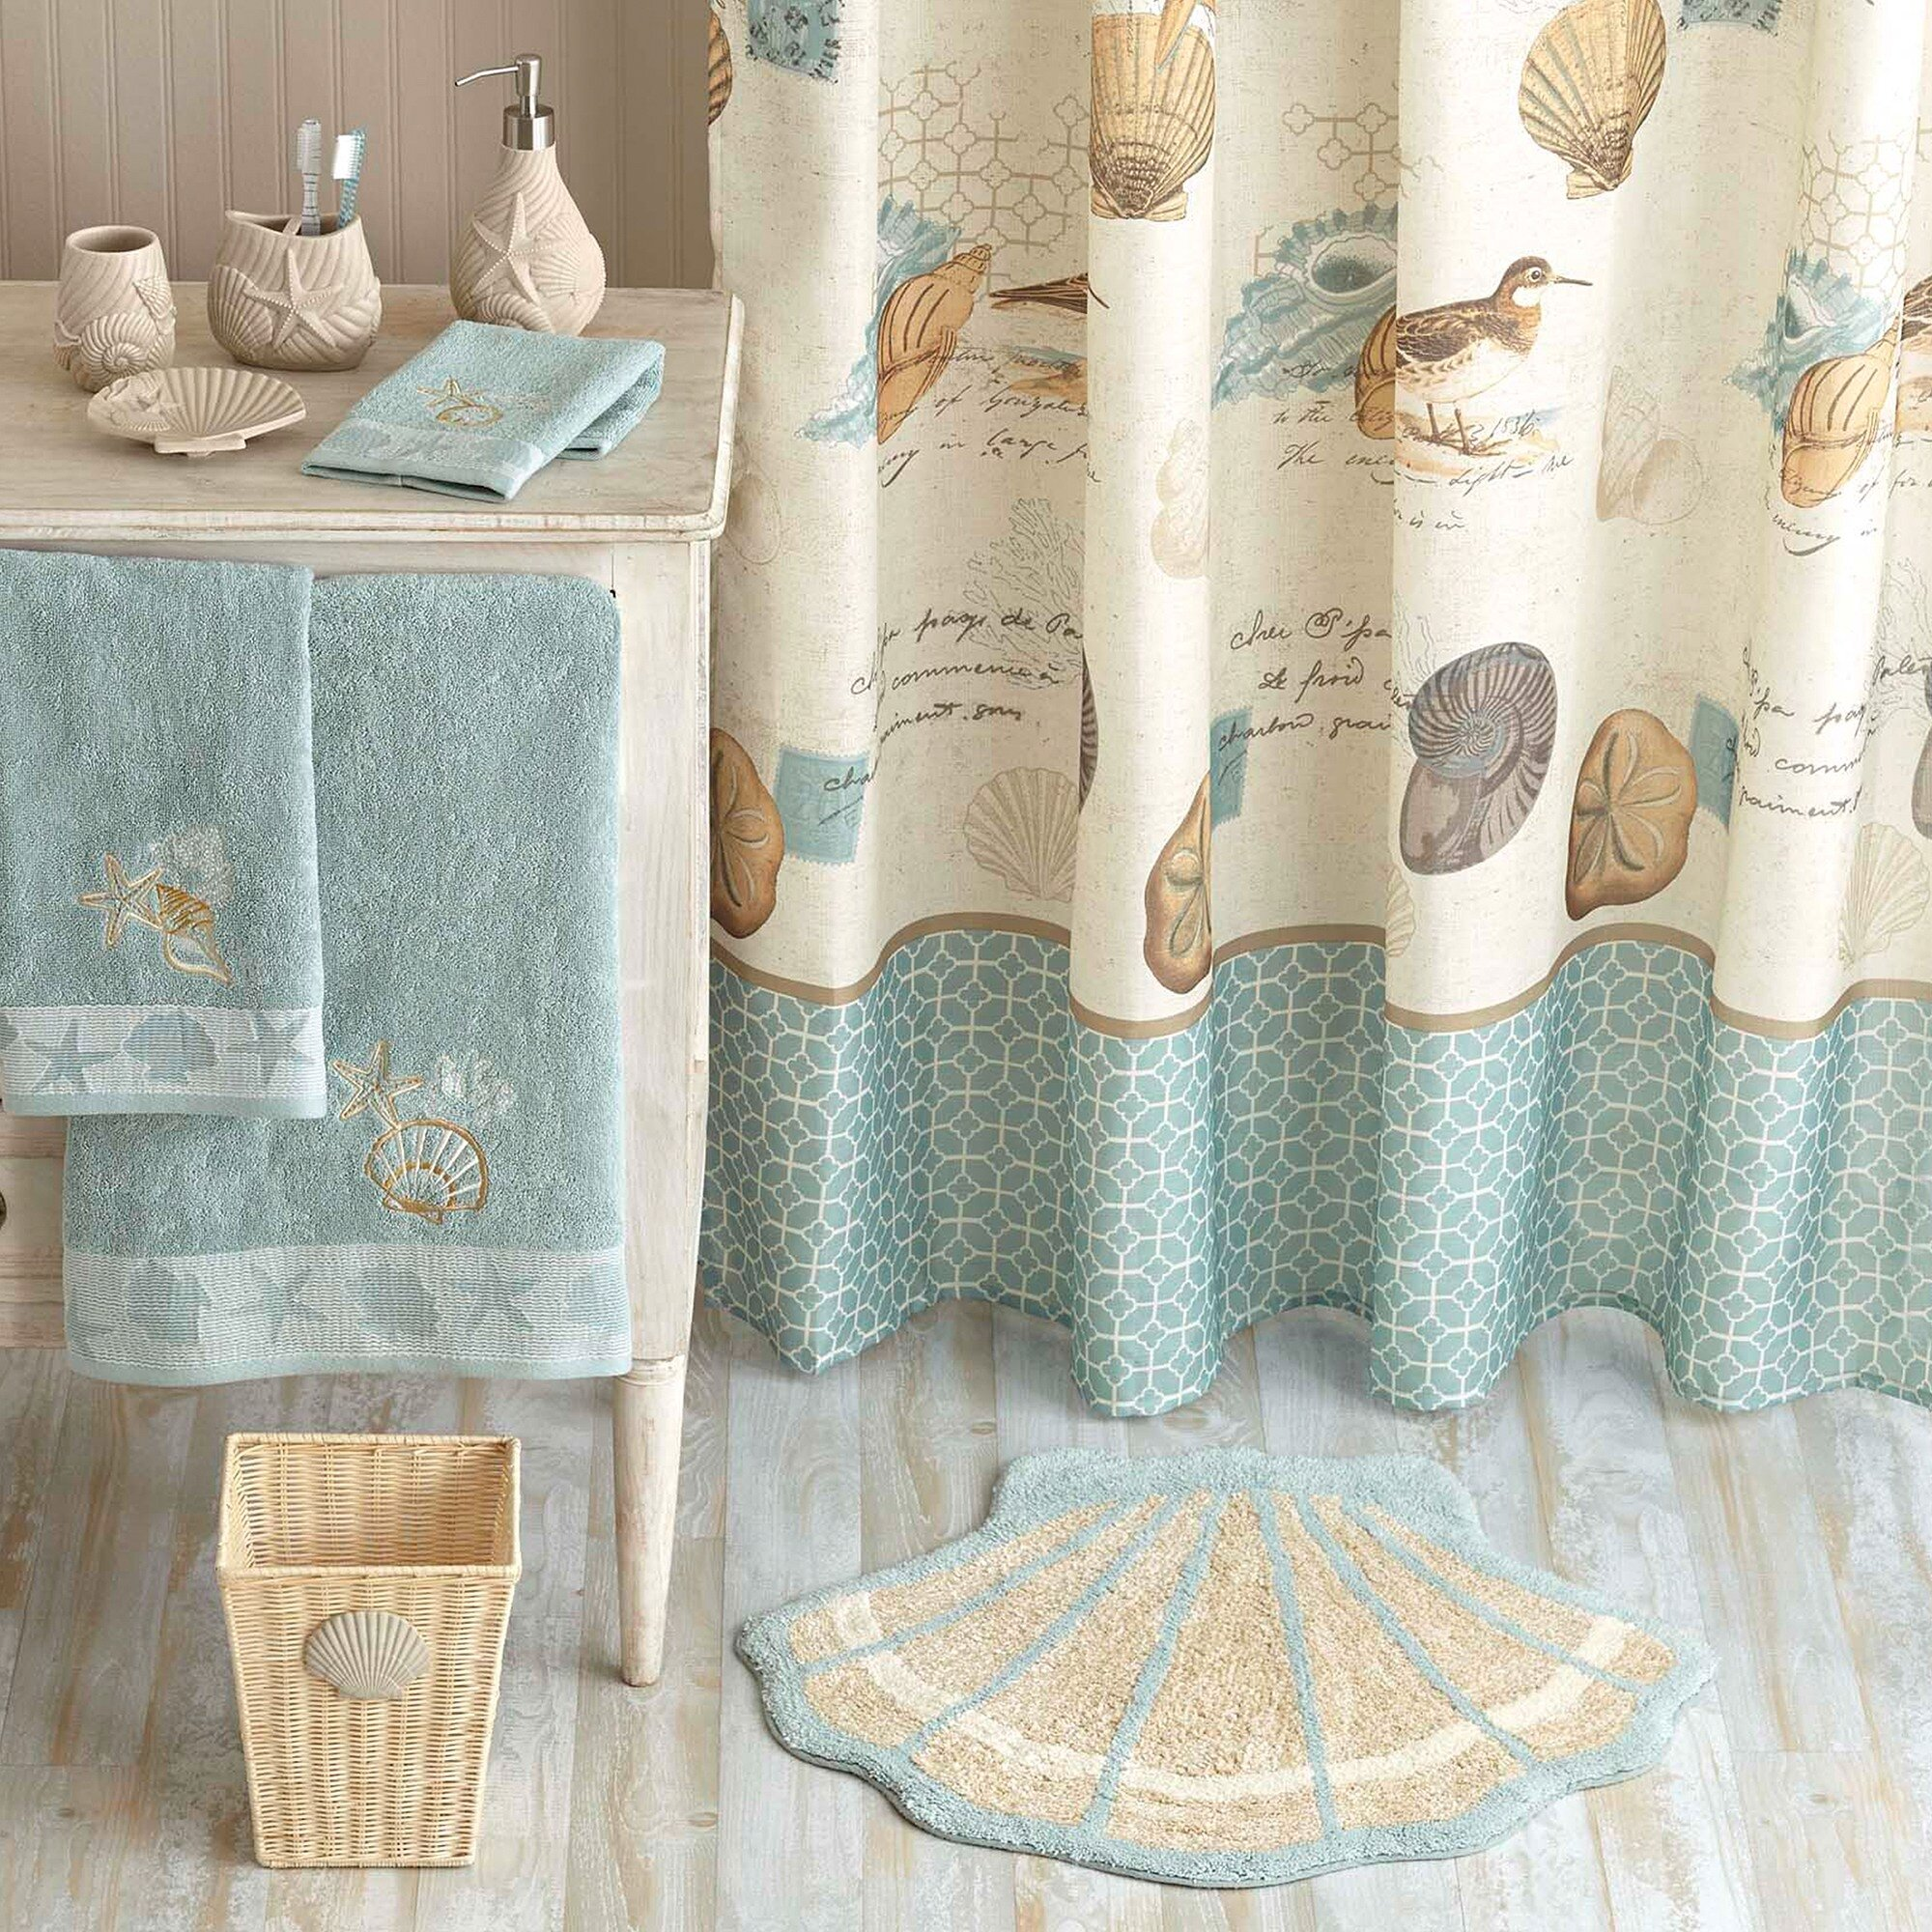 Fabric Shower Curtains | Walmart Shower Curtain | Walmart Shower Curtain Rod